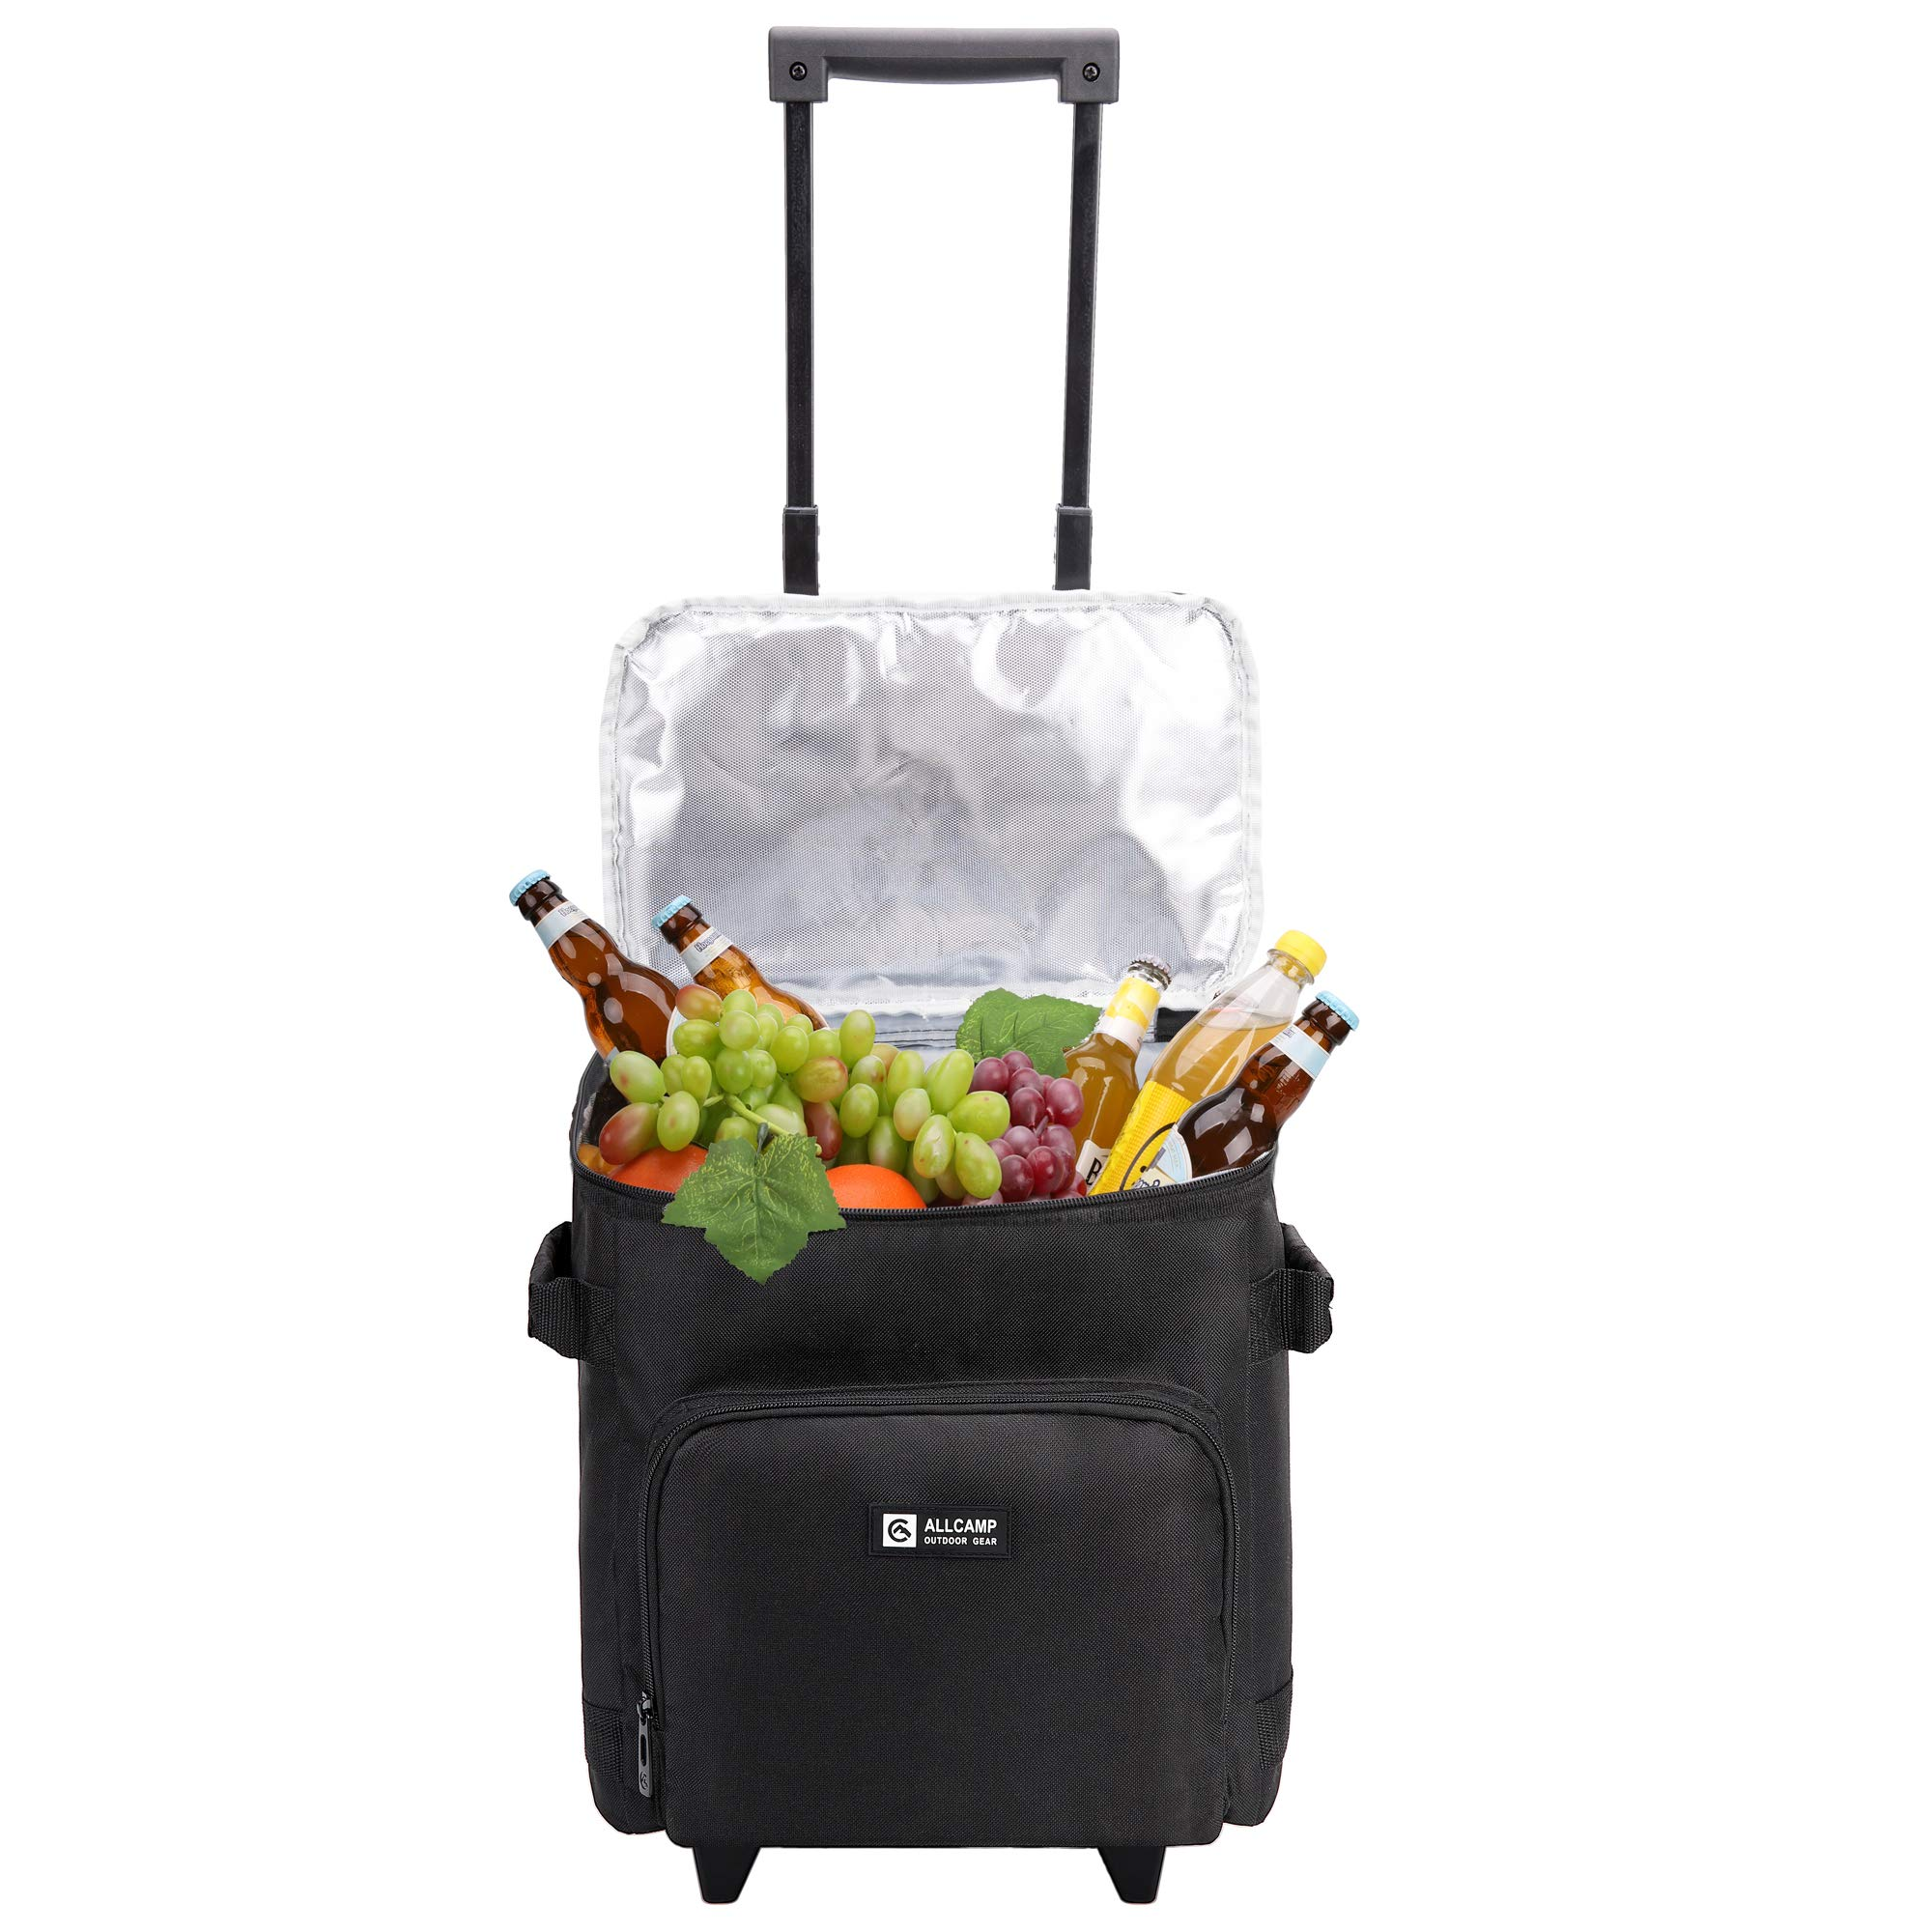 ALLCAMP Insulated Cooler 6 Bottle Wine Tote with Trolley Picnic Soft Cooler with Removable Liner & Wheels